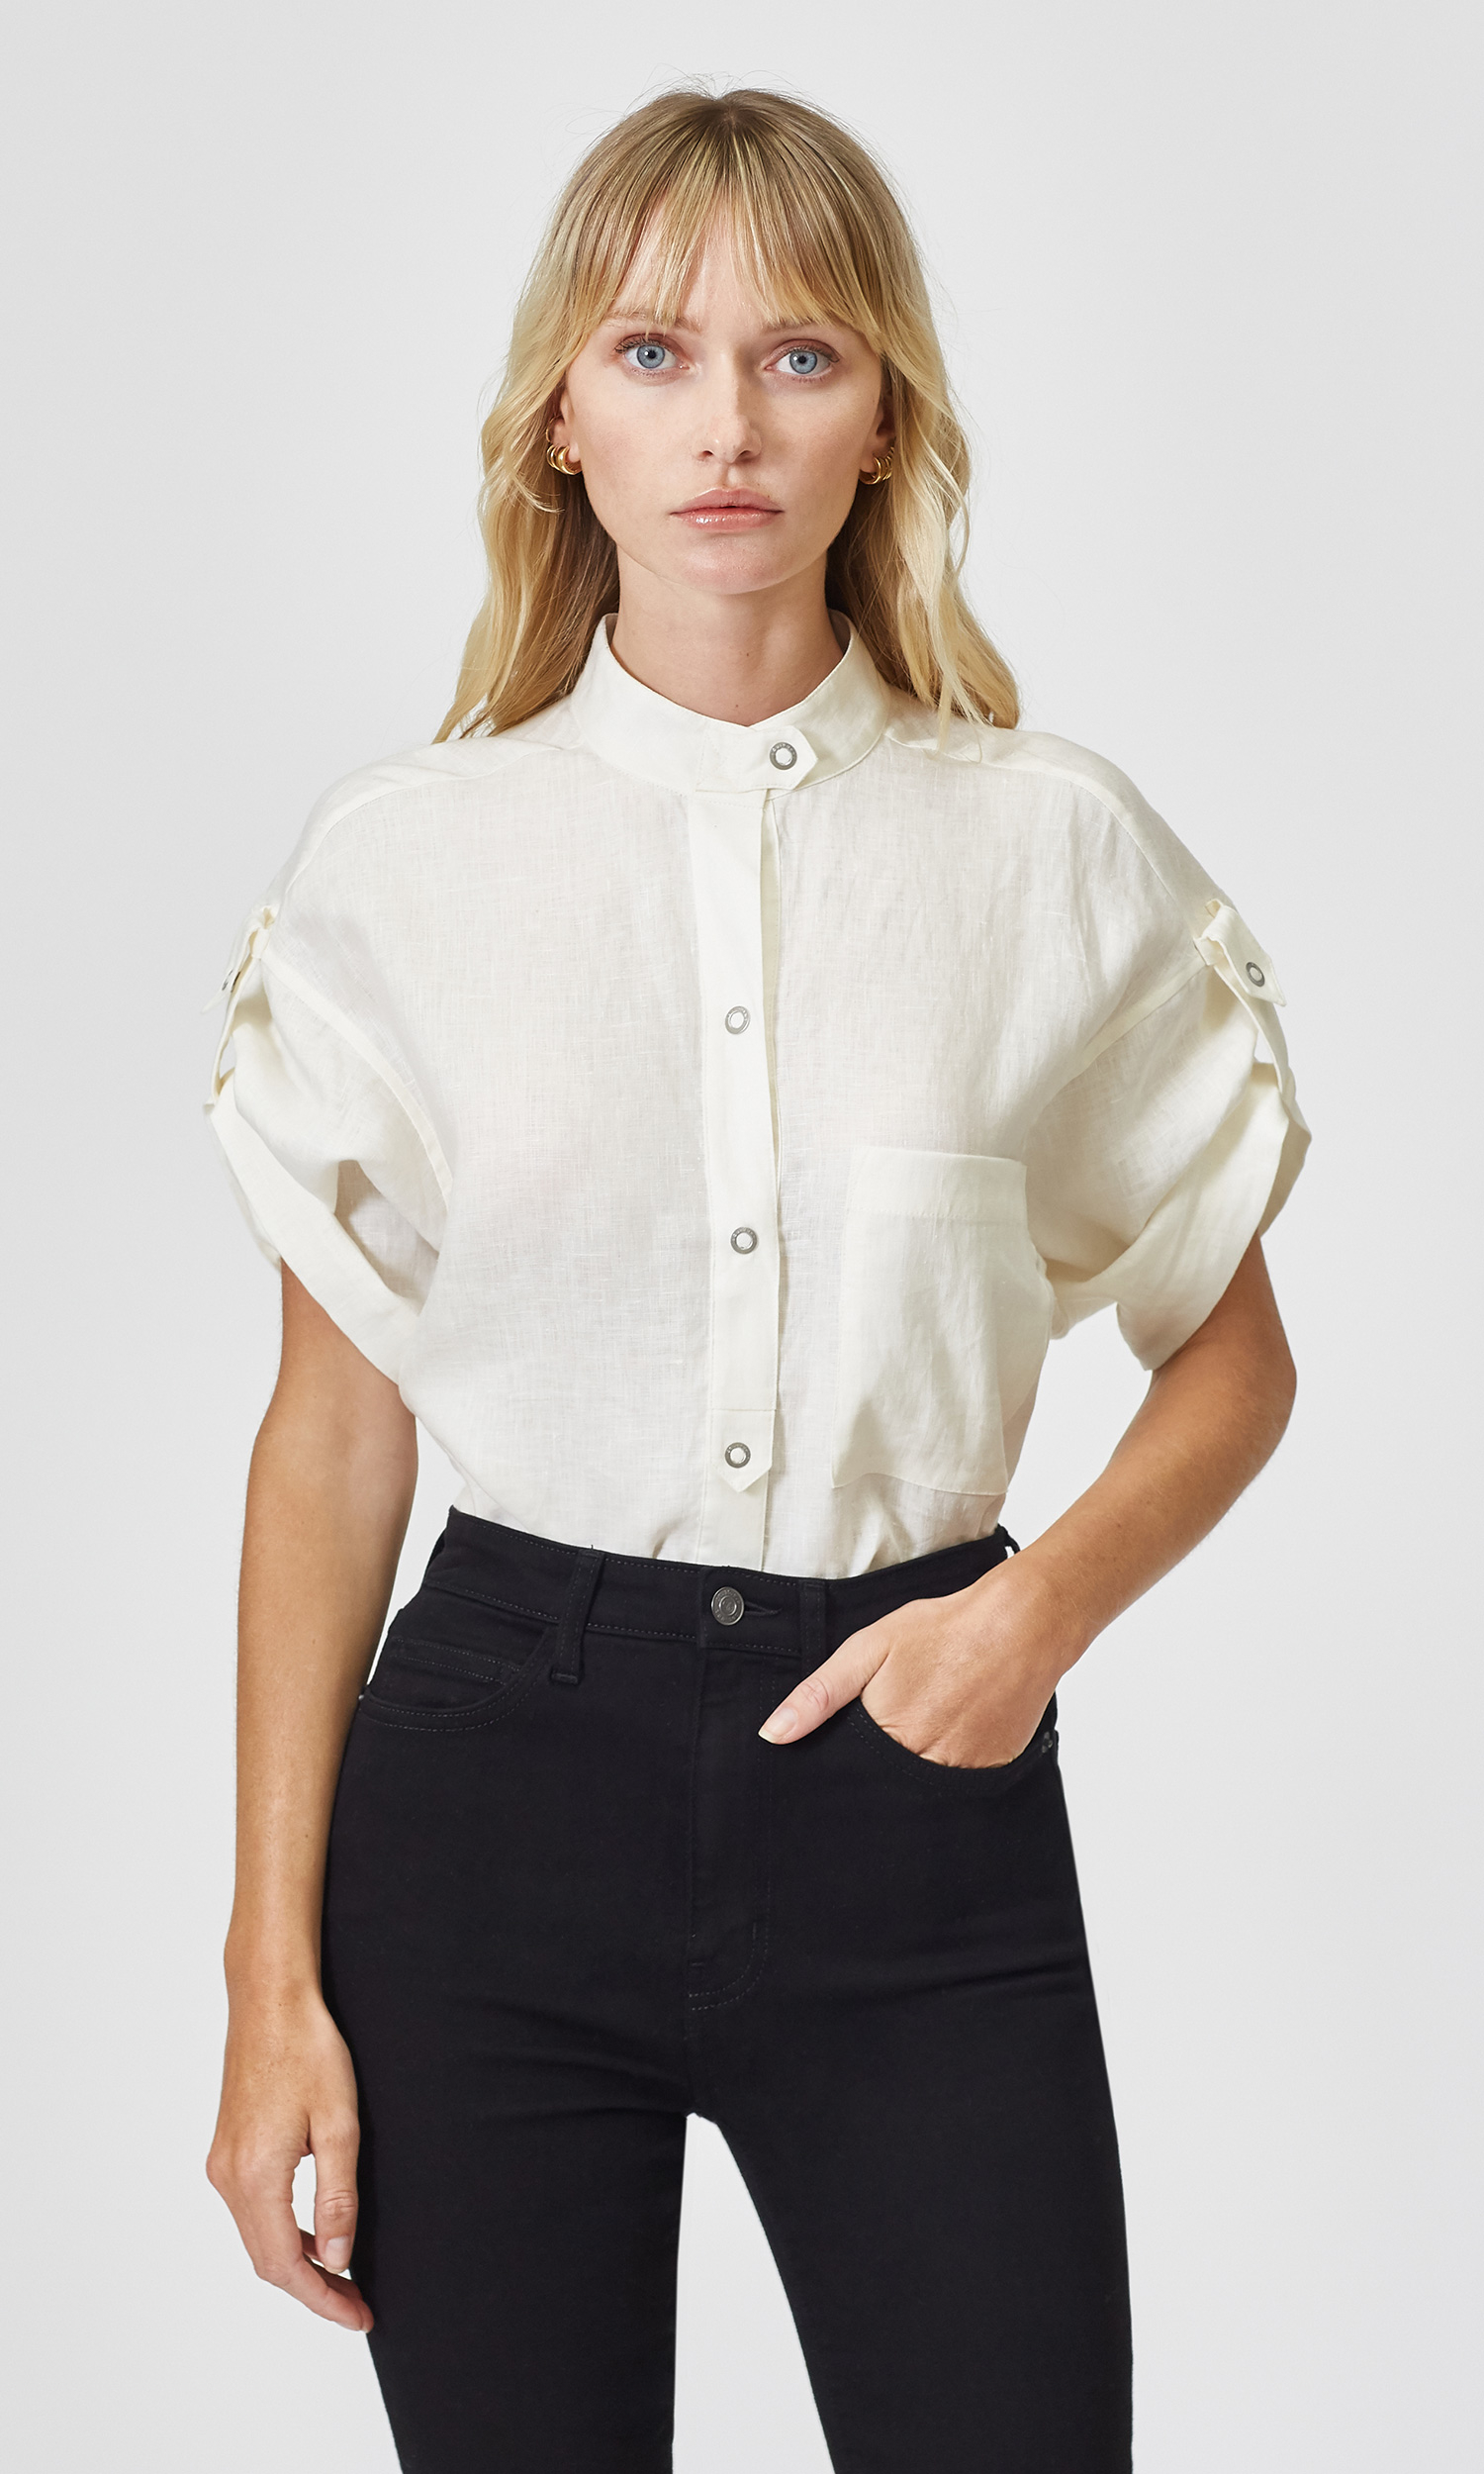 Drace Linen Shirt by Equipment